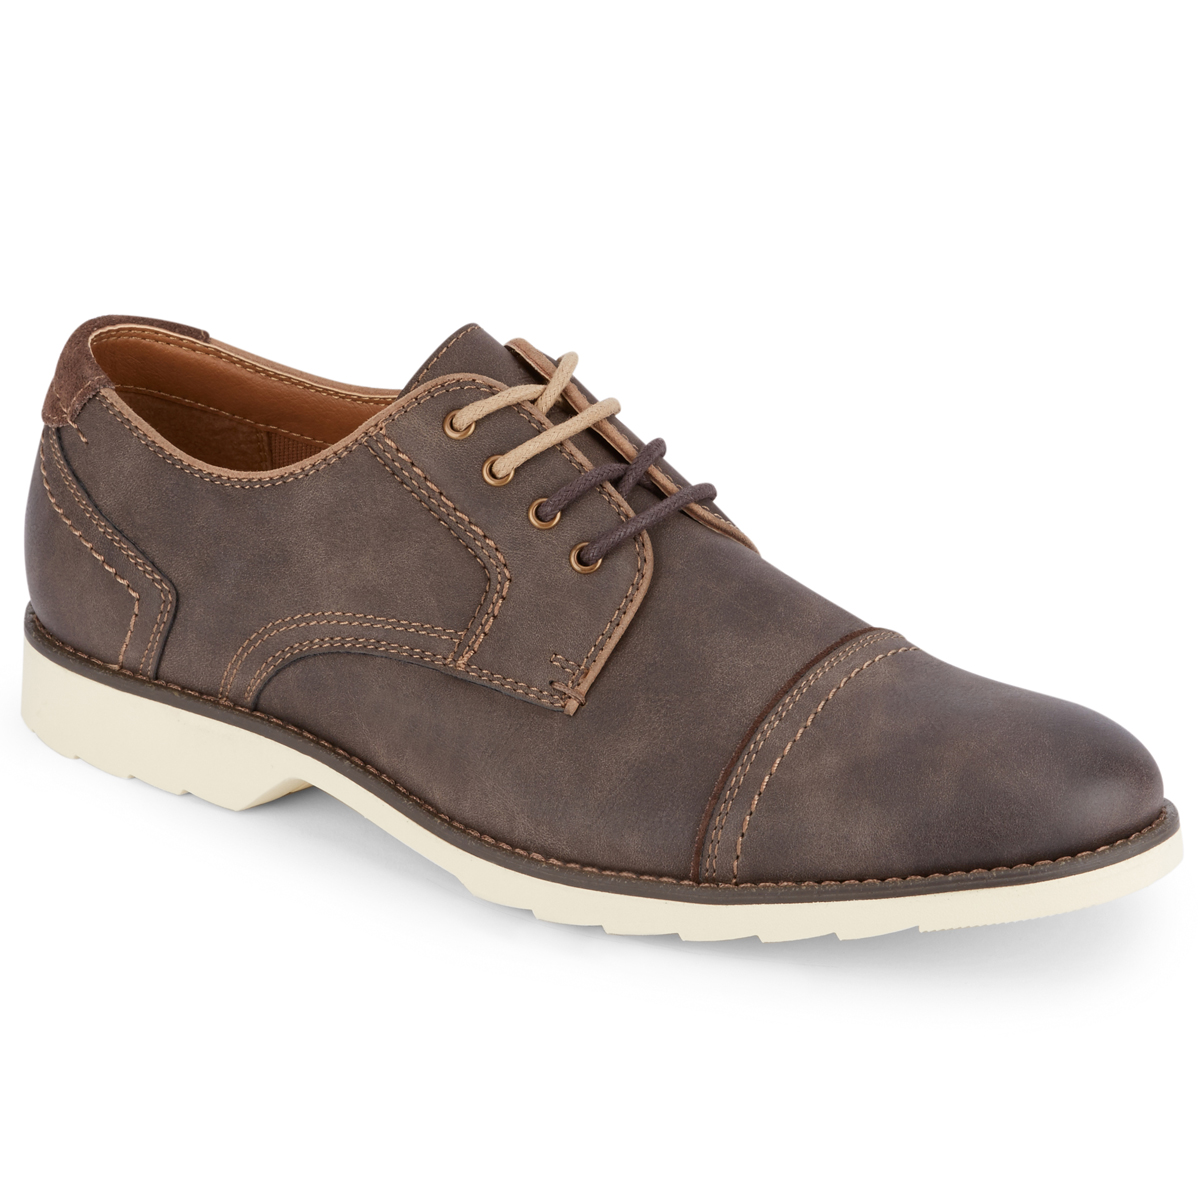 Dockers Men's Murray Cap Toe Oxford Shoes - Brown, 9